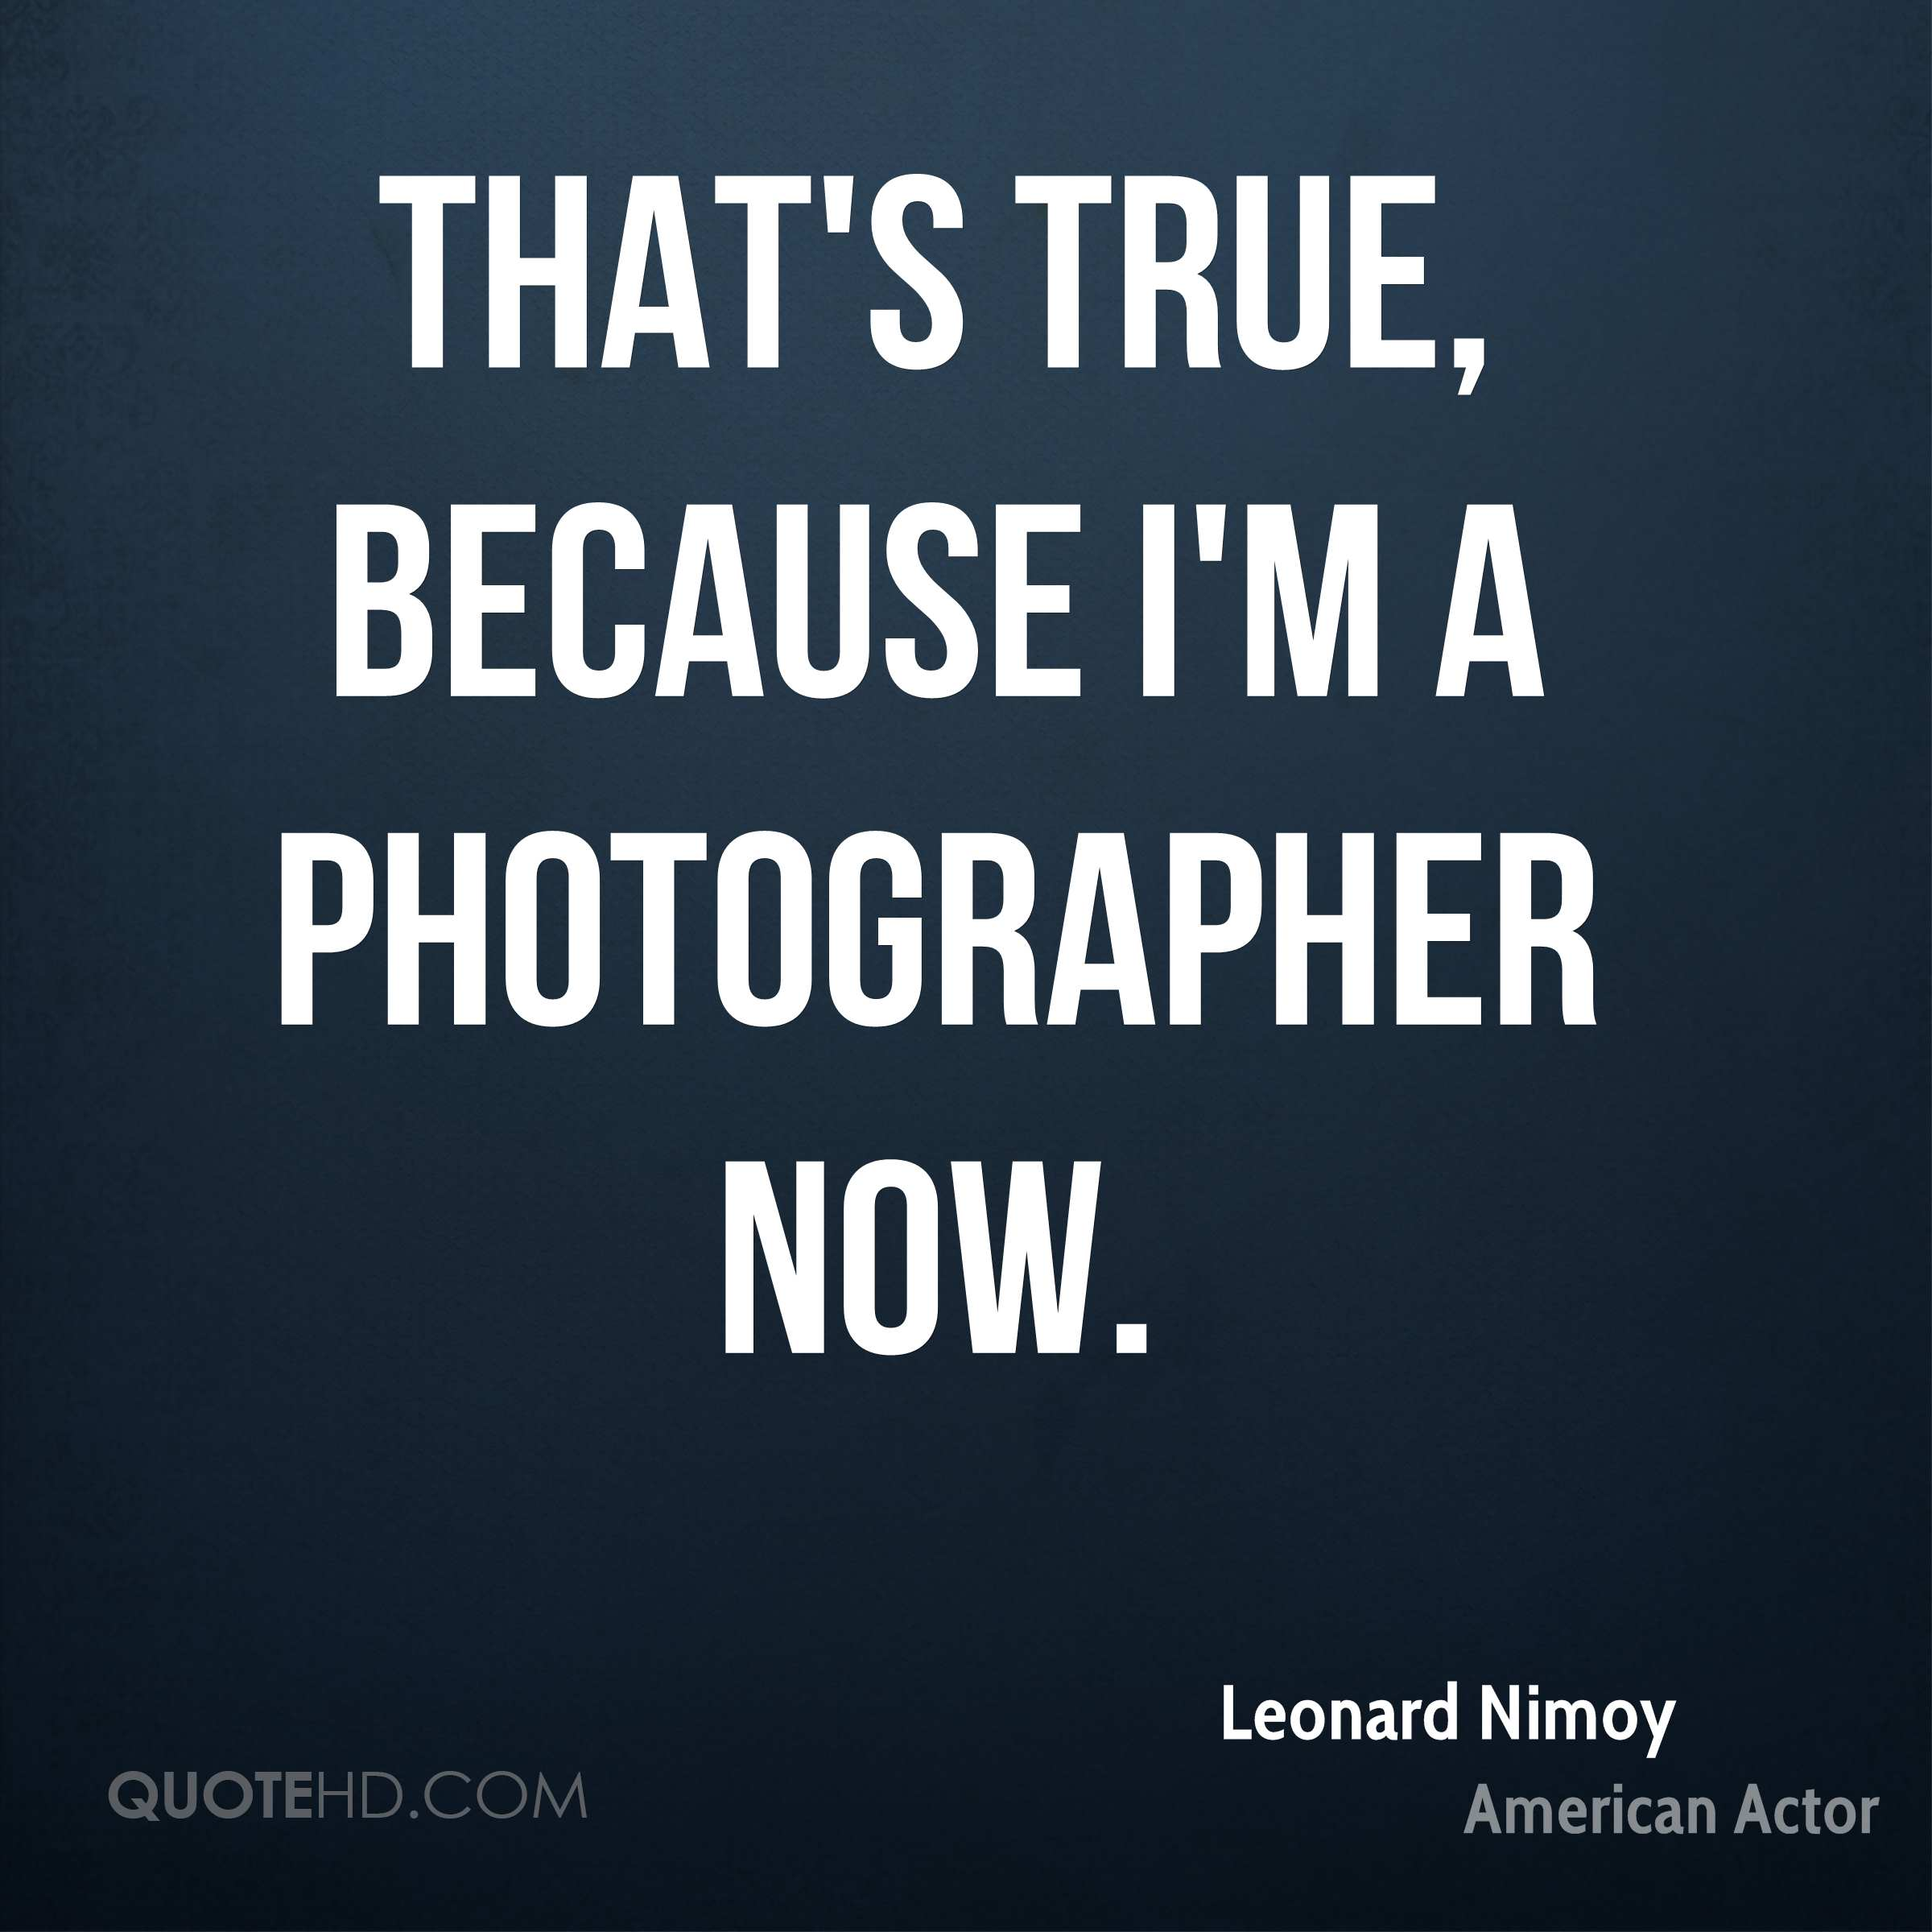 That's true, because I'm a photographer now.